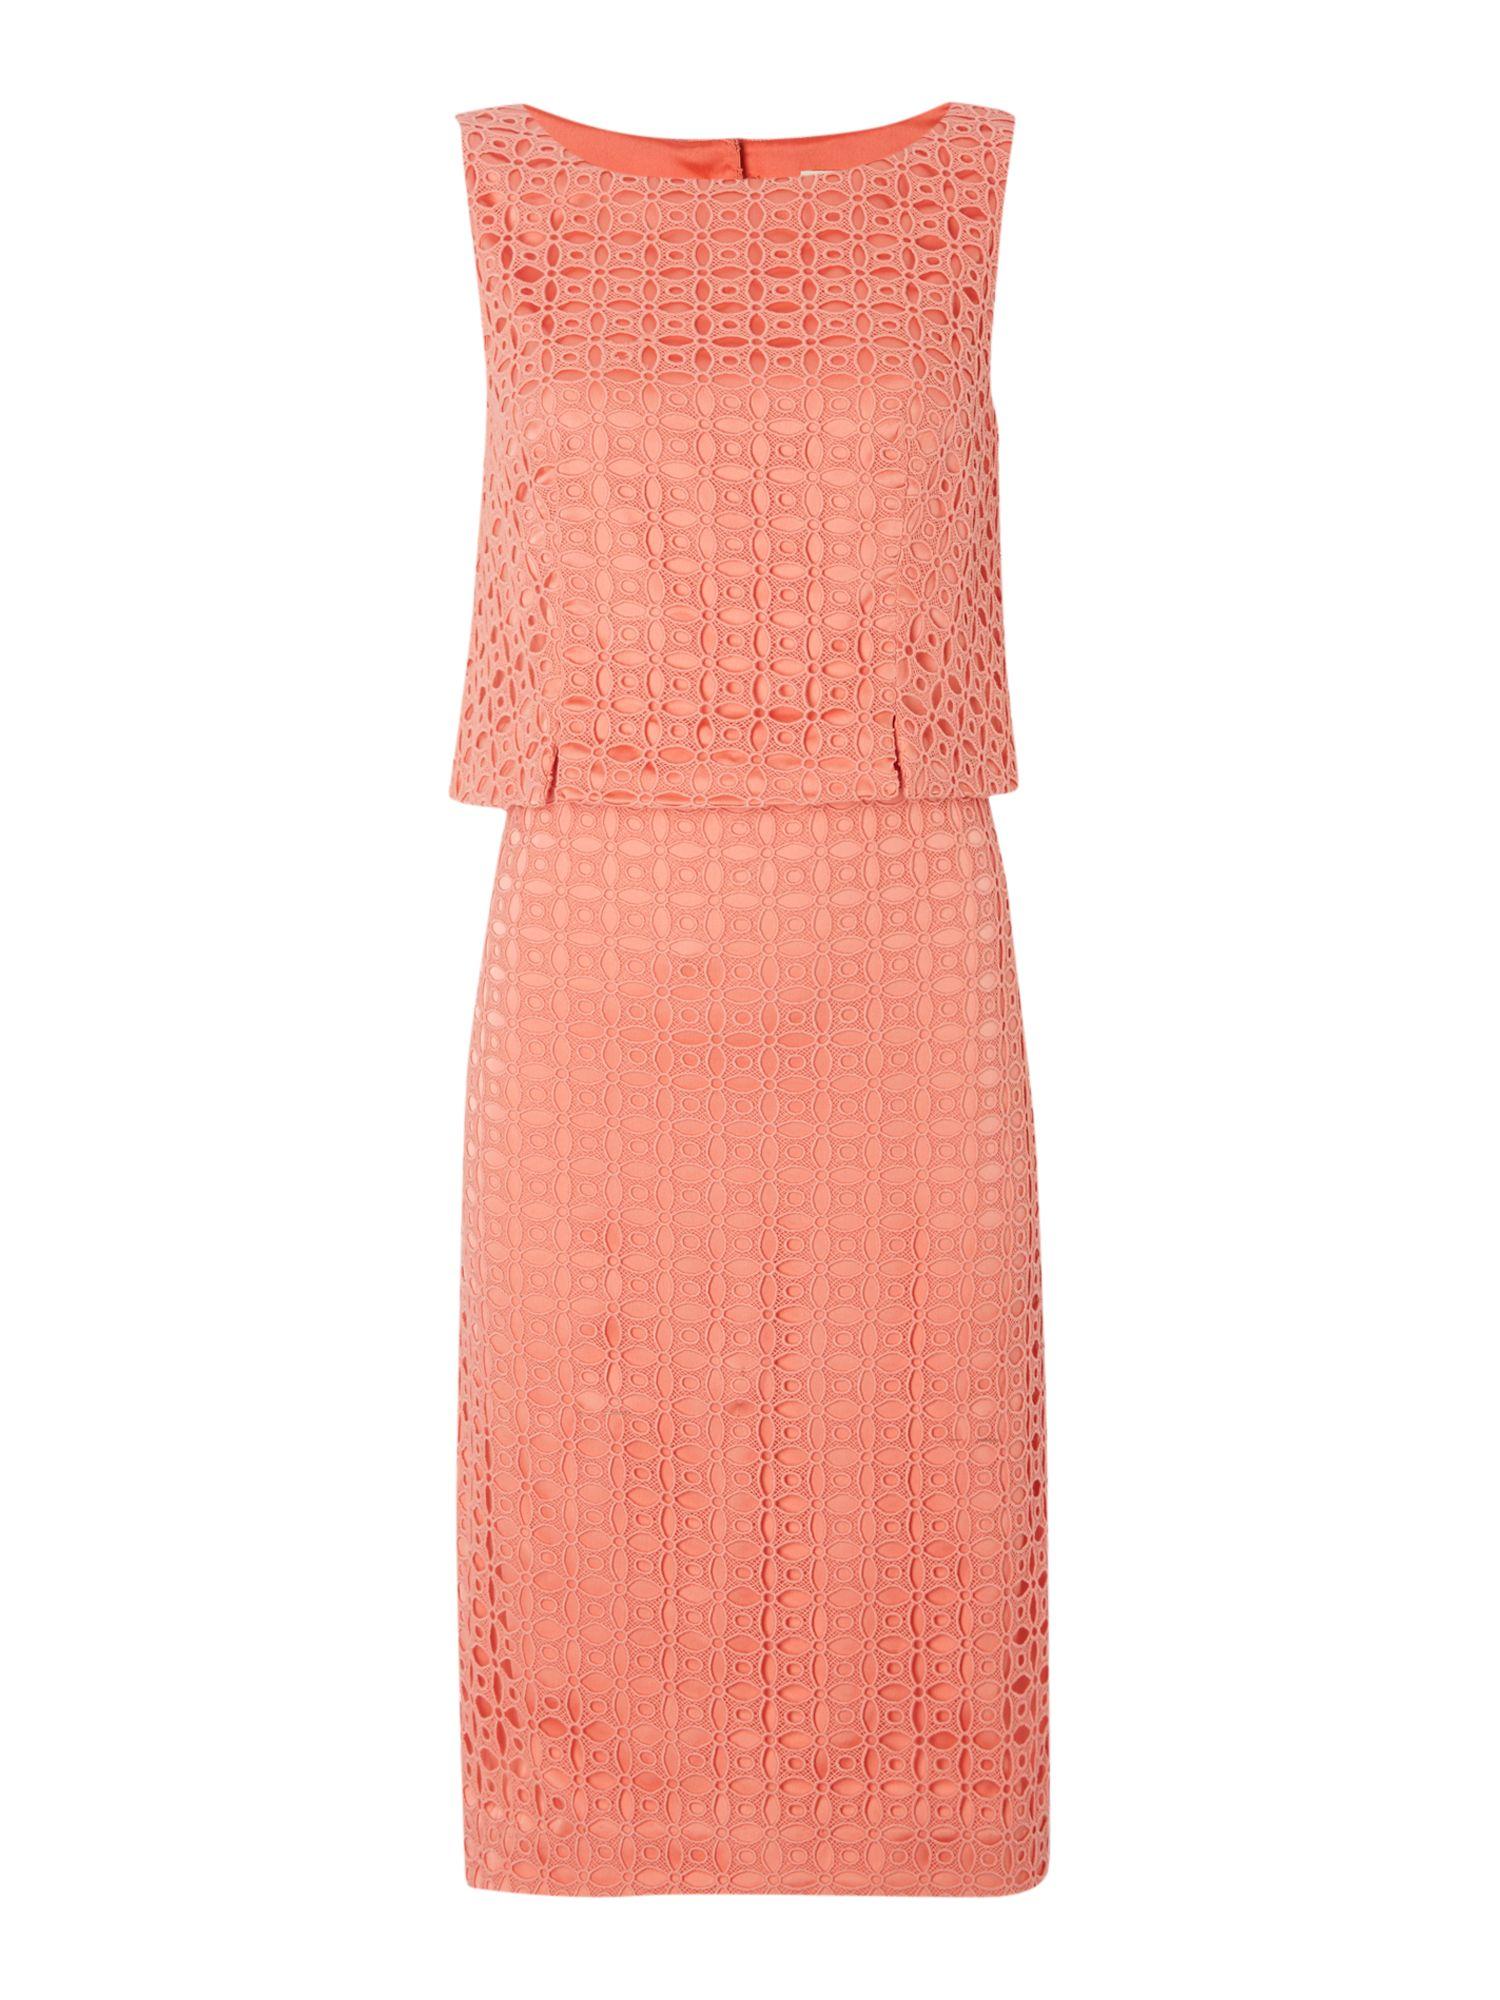 Linea 2 in 1 lace dress, Coral